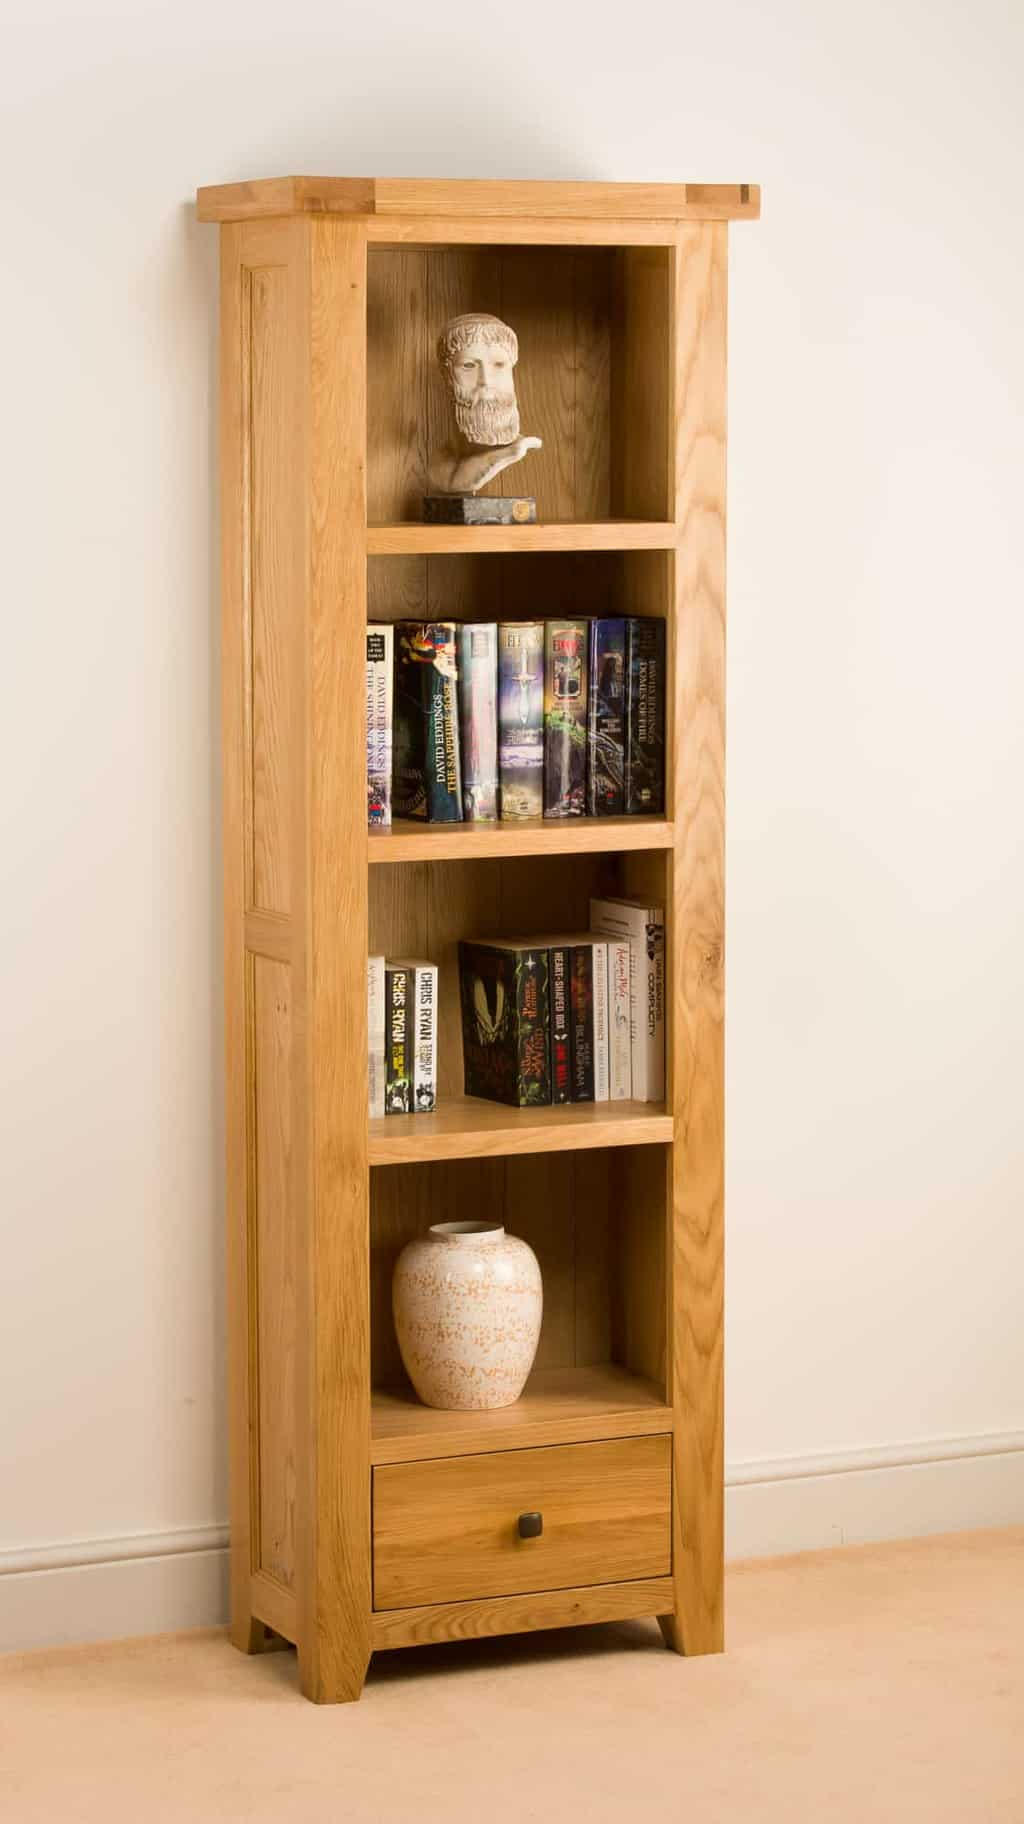 Devon Solid Wood Chunky Oak Slim Narrow Bookcase Display Unit